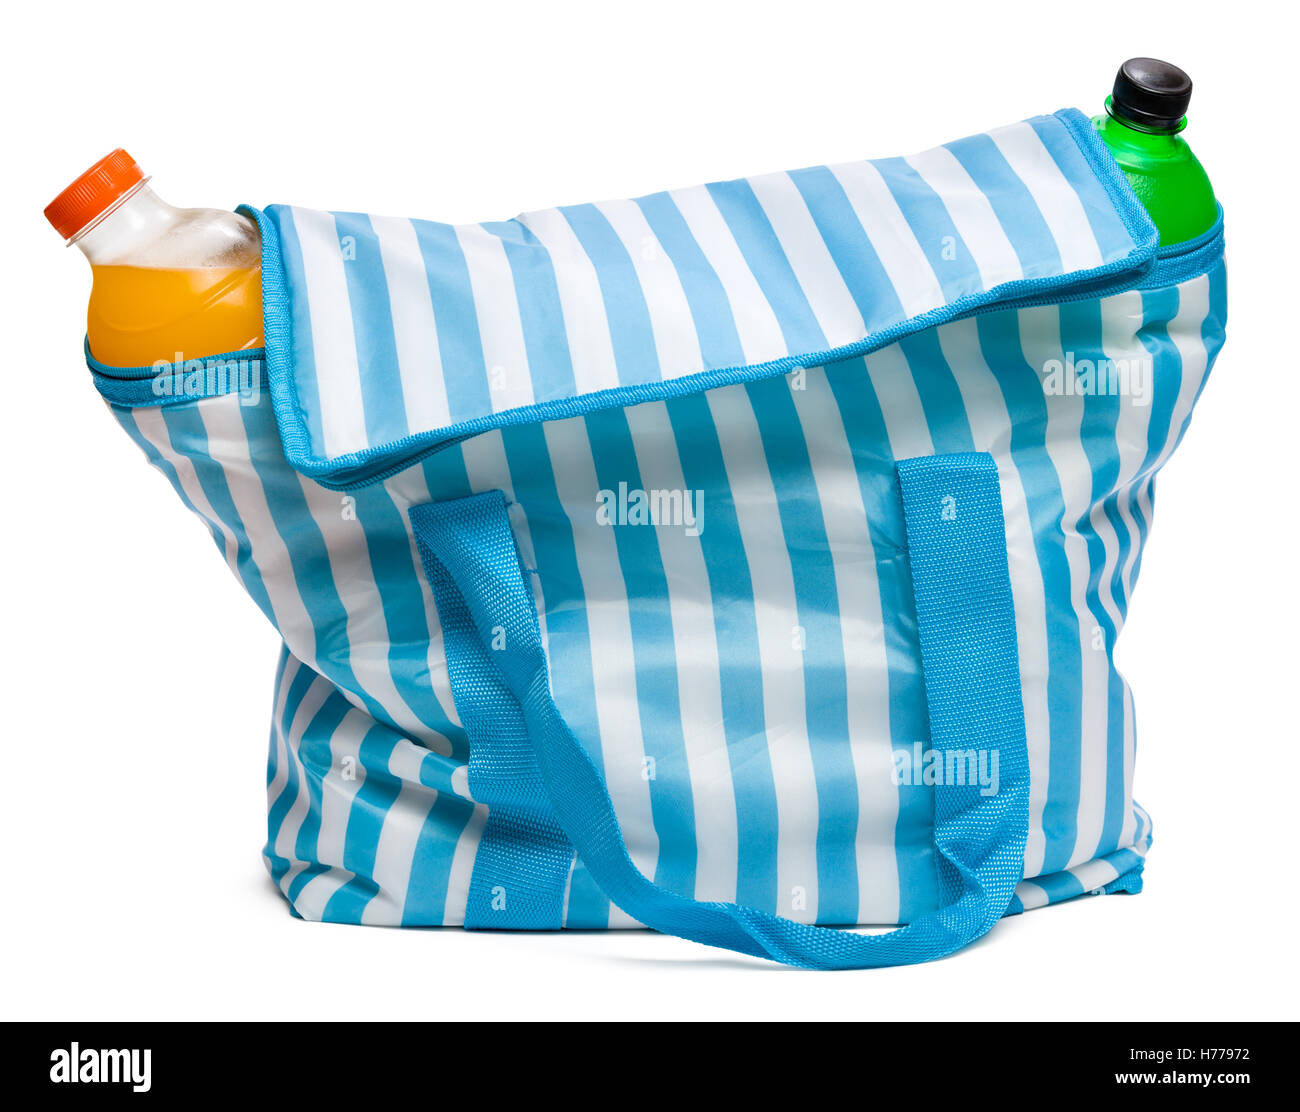 Closed standing blue striped cooler bag with full of cool refreshing drinks - Stock Image